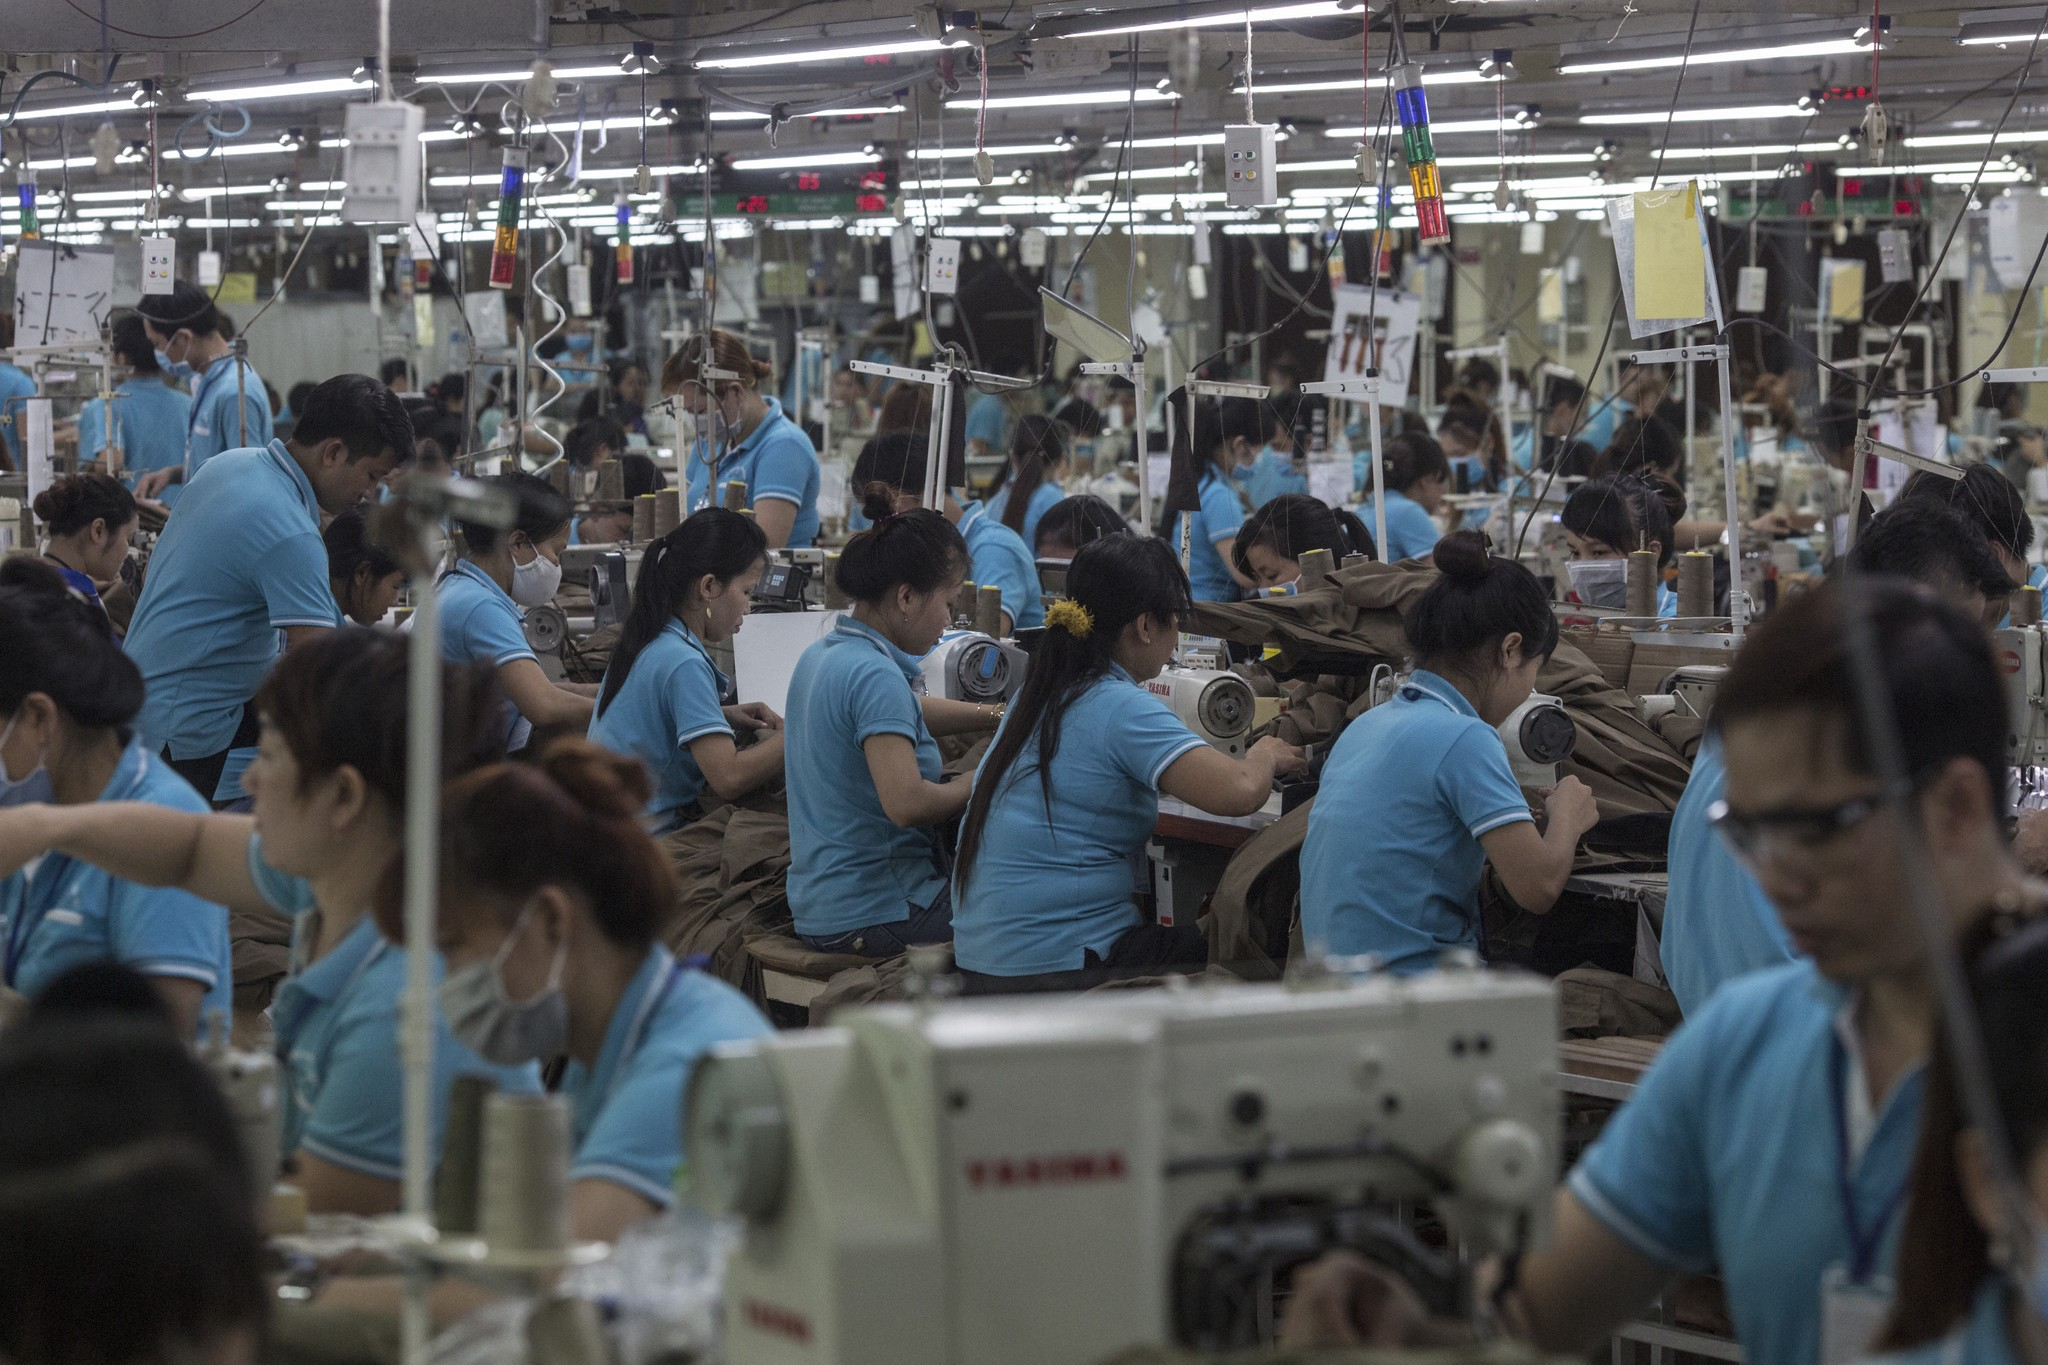 Line-workers at a garment factory in Dong Nai province, Vietnam, November, 2017. Credit: Sam Tarling/Oxfam